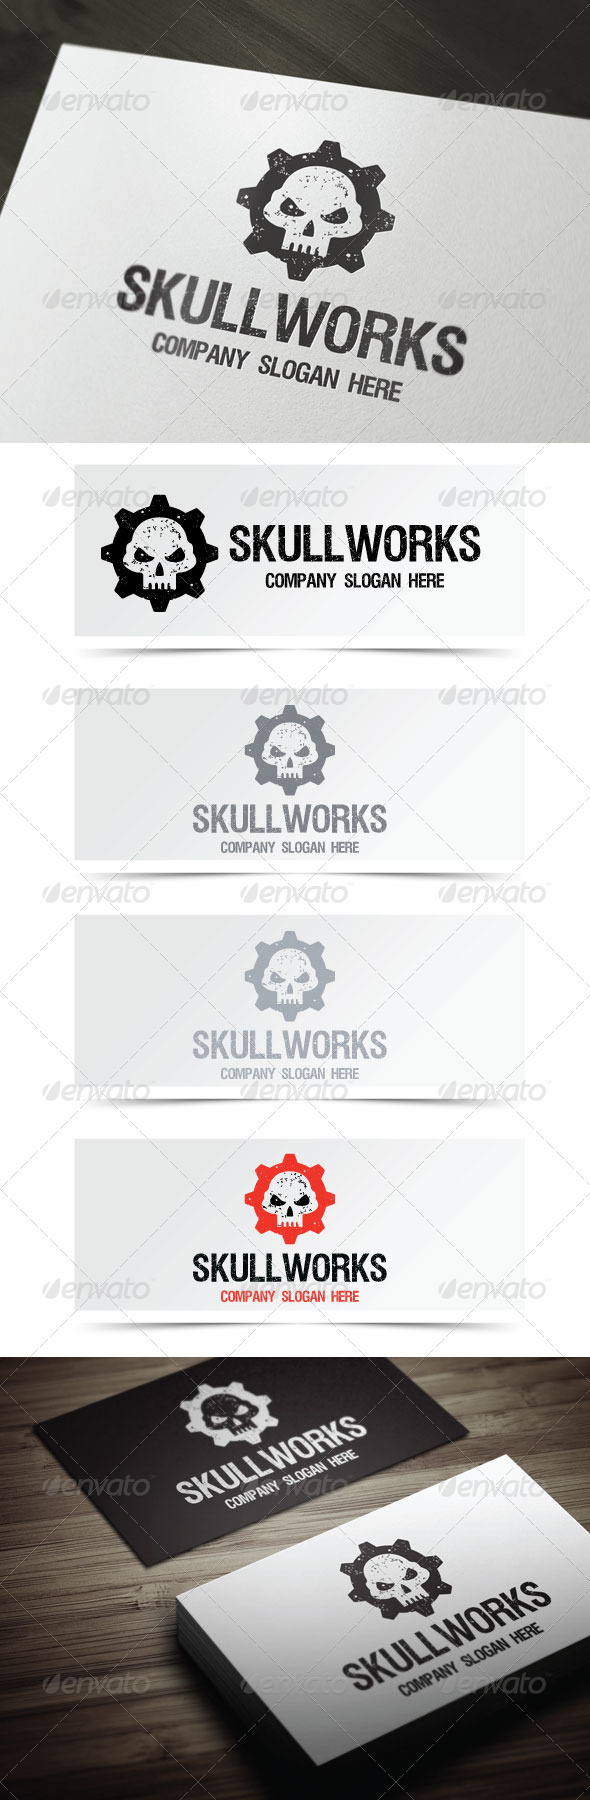 GraphicRiver Skull Works 4803795